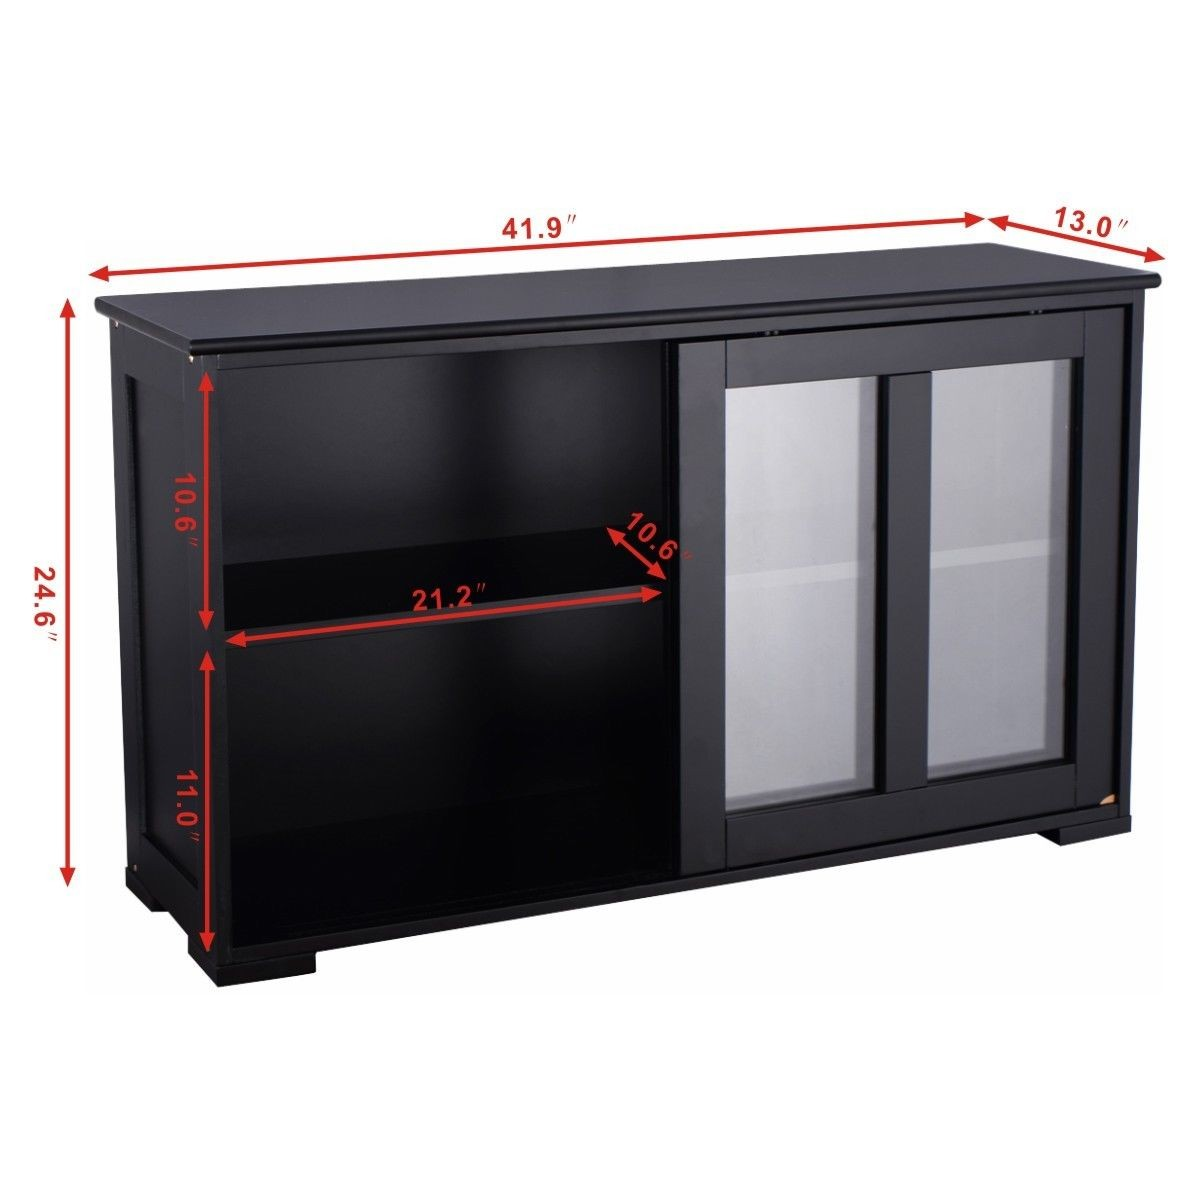 Kitchen Cabinets Sliding Doors: Home Kitchen Stackable Storage Cabinet With Glass Sliding